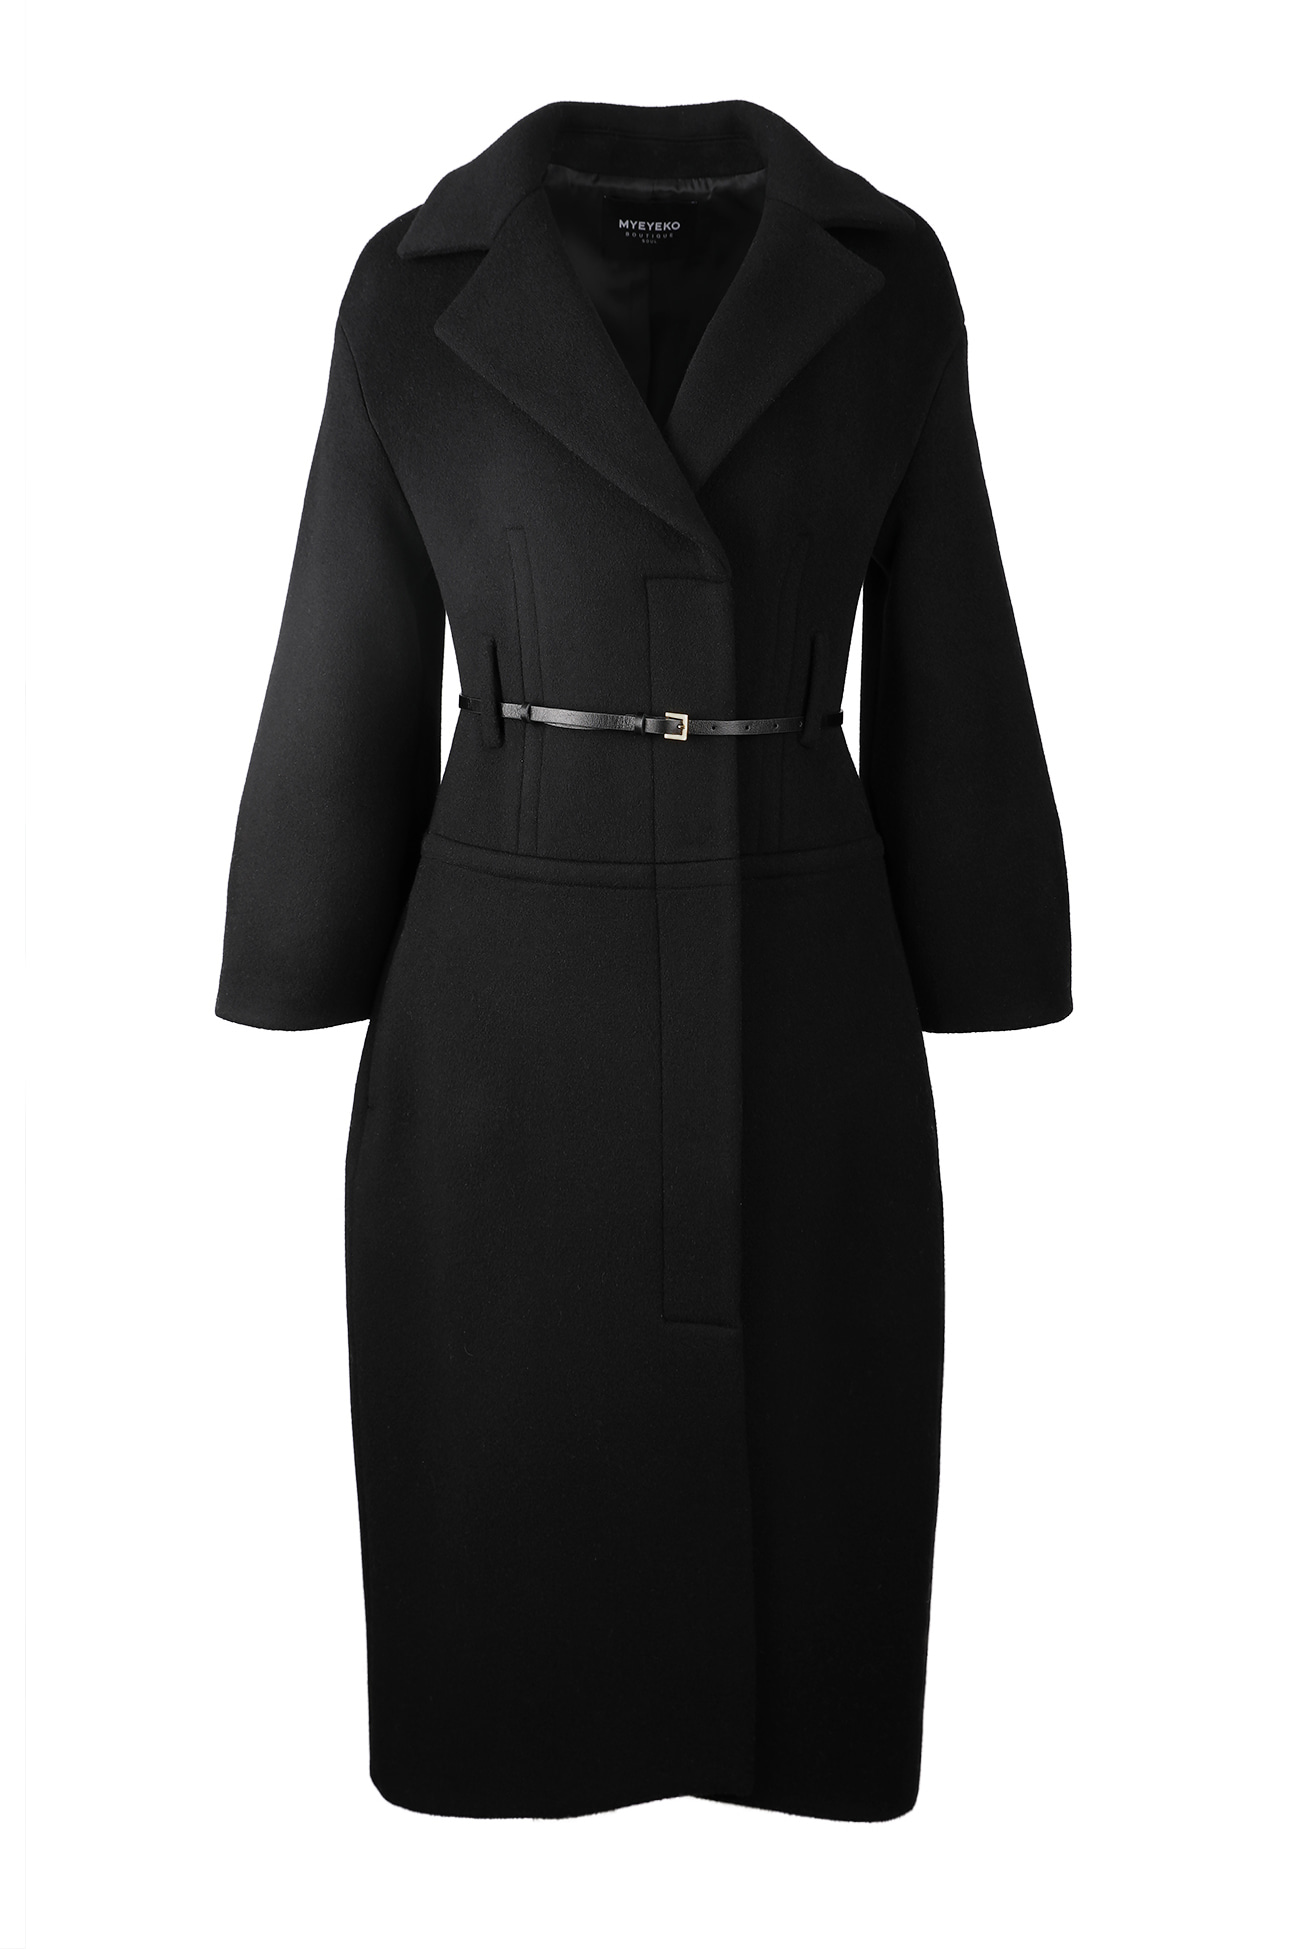 HIGH QUALITY LINE - ELEGANT SILHOUETTE Single-breasted belted coat (블랙)